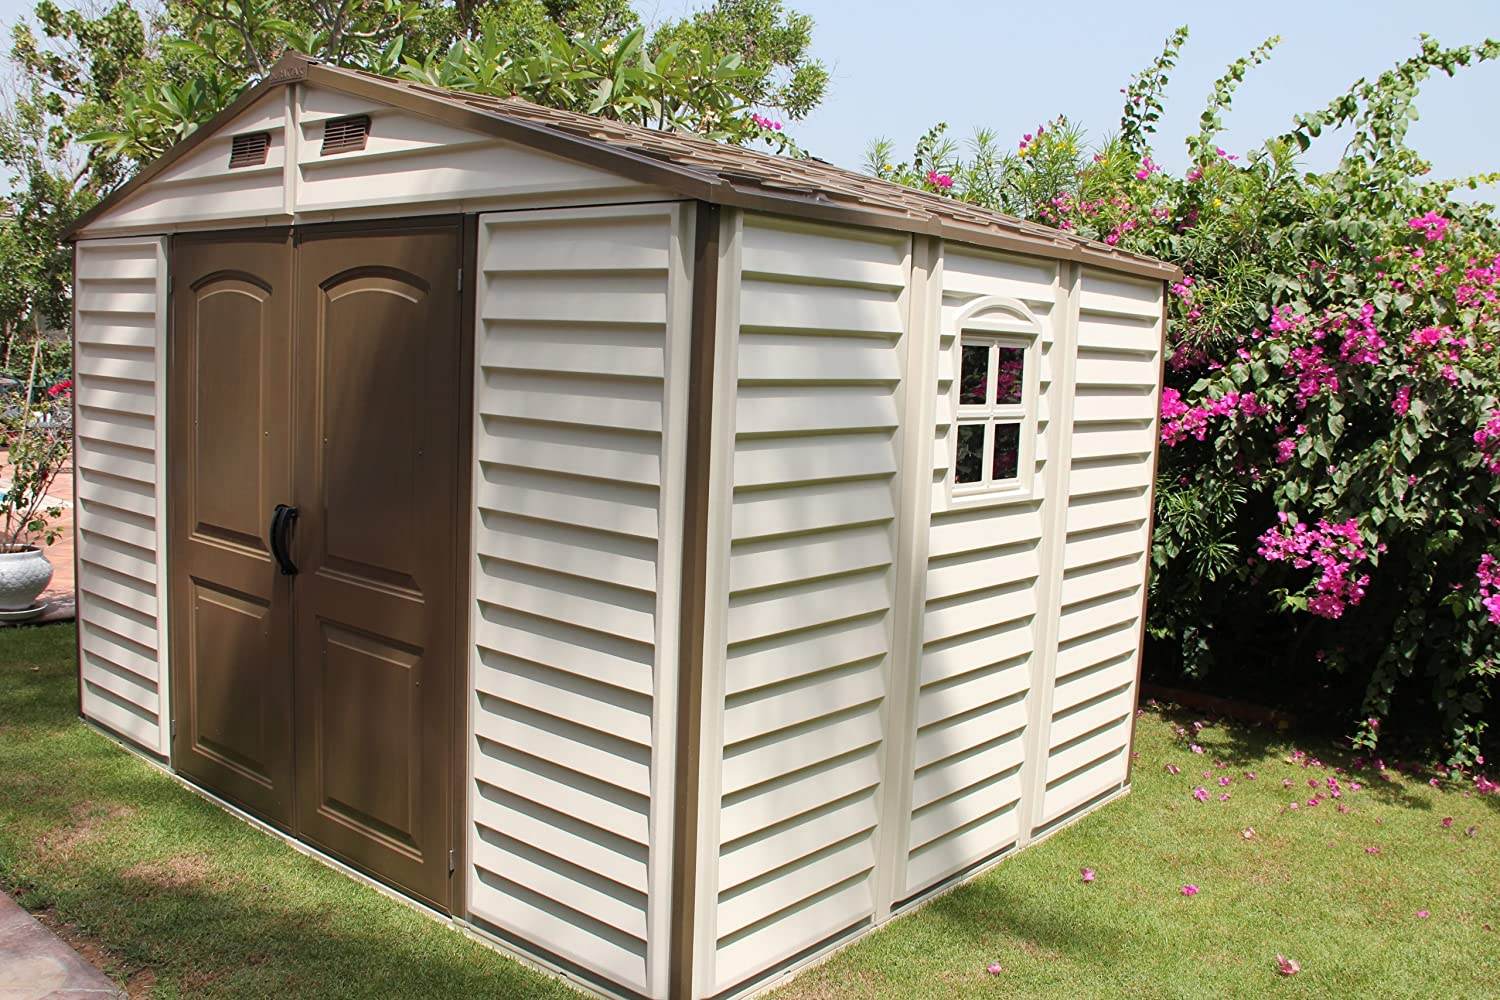 amazoncom duramax 30211 woodside vinyl shed with foundation 105 by 8 feet storage sheds garden outdoor - Garden Sheds Vinyl